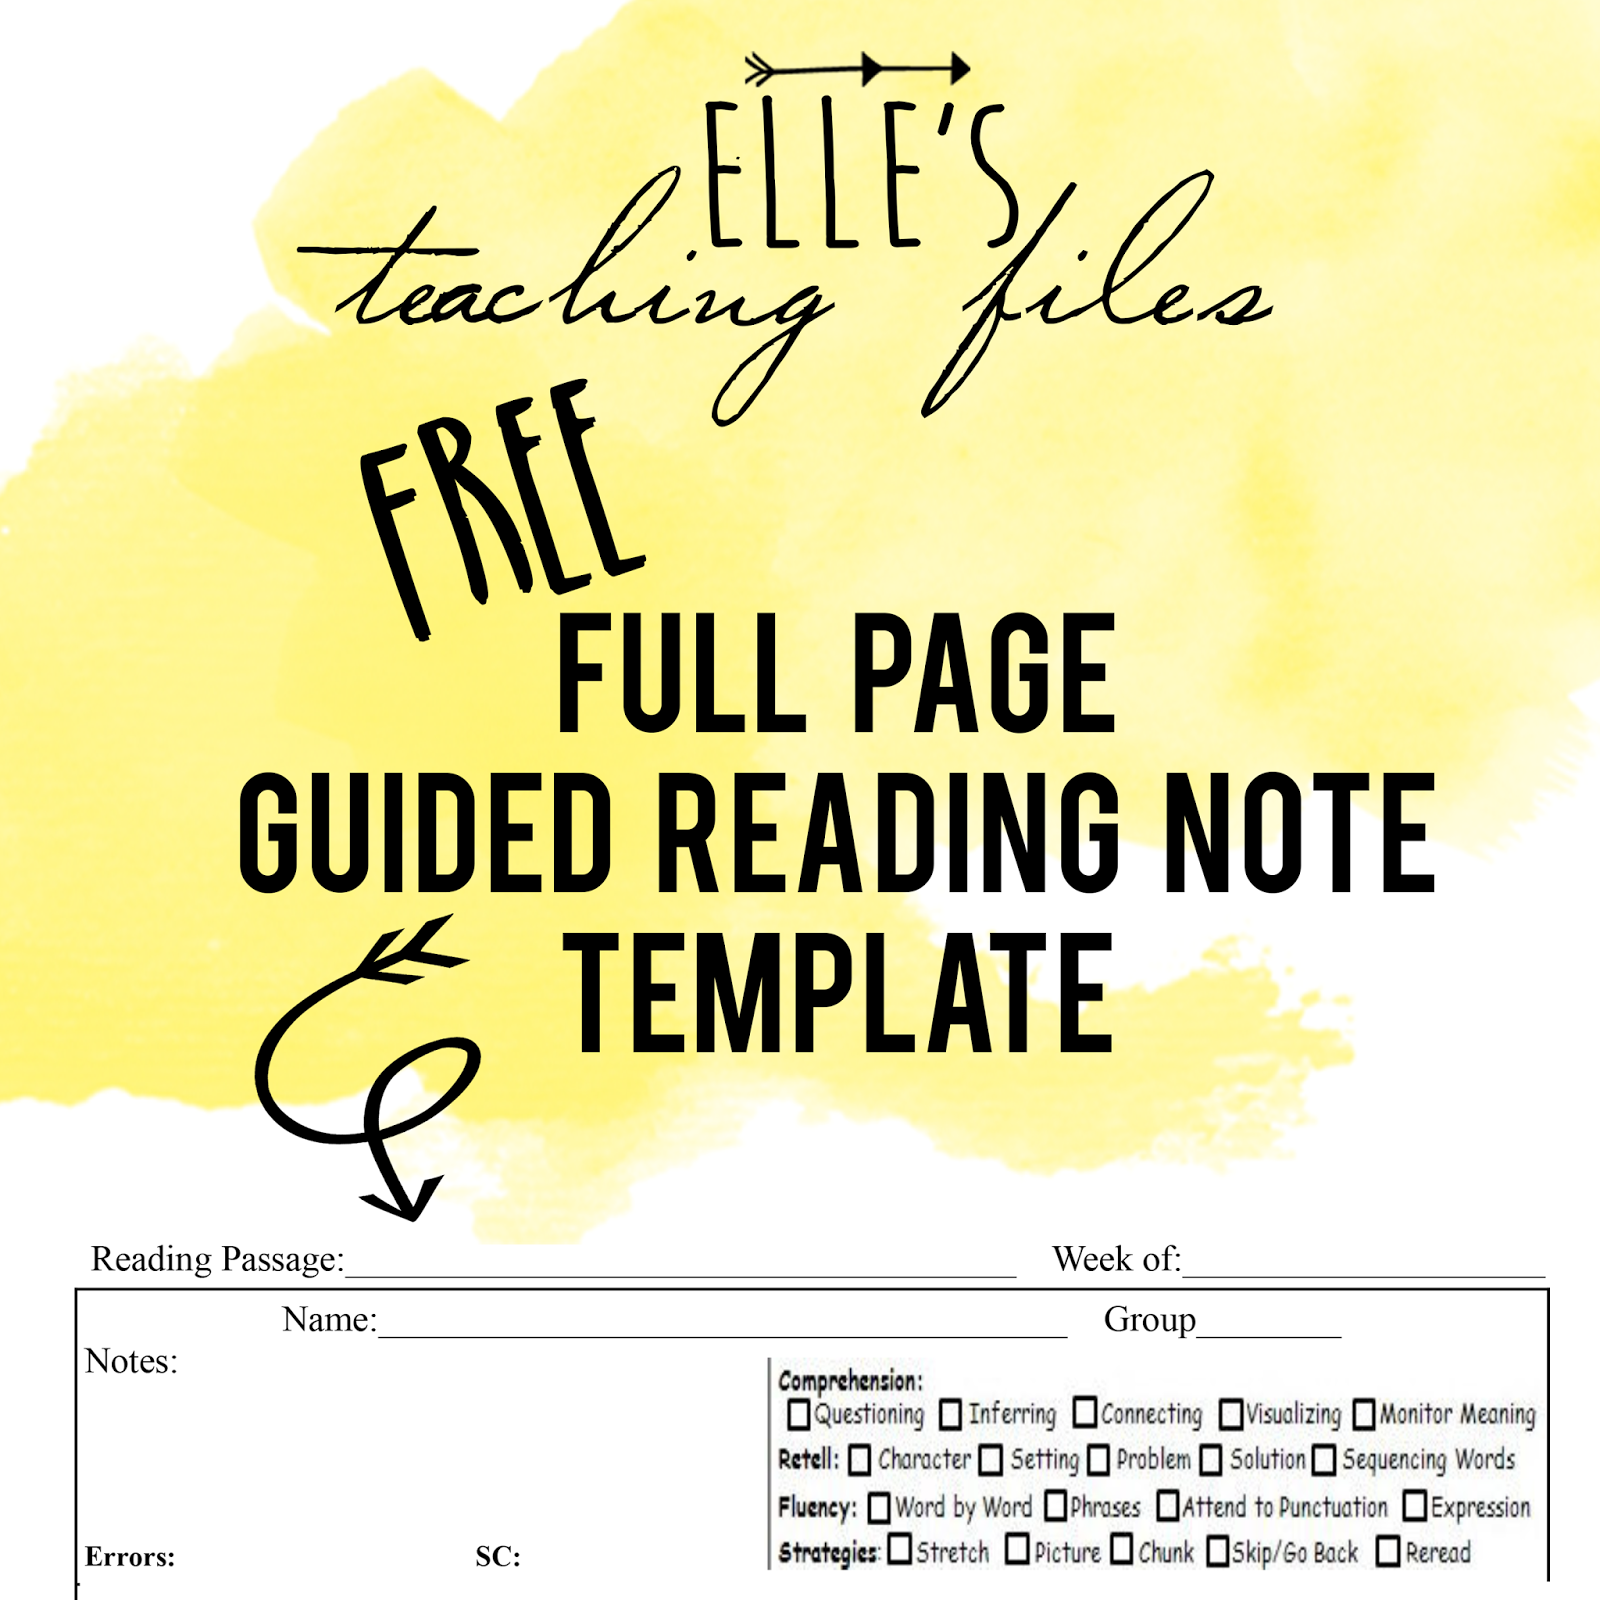 Guided Reading Note Template  Anecdotal Recordings  Free